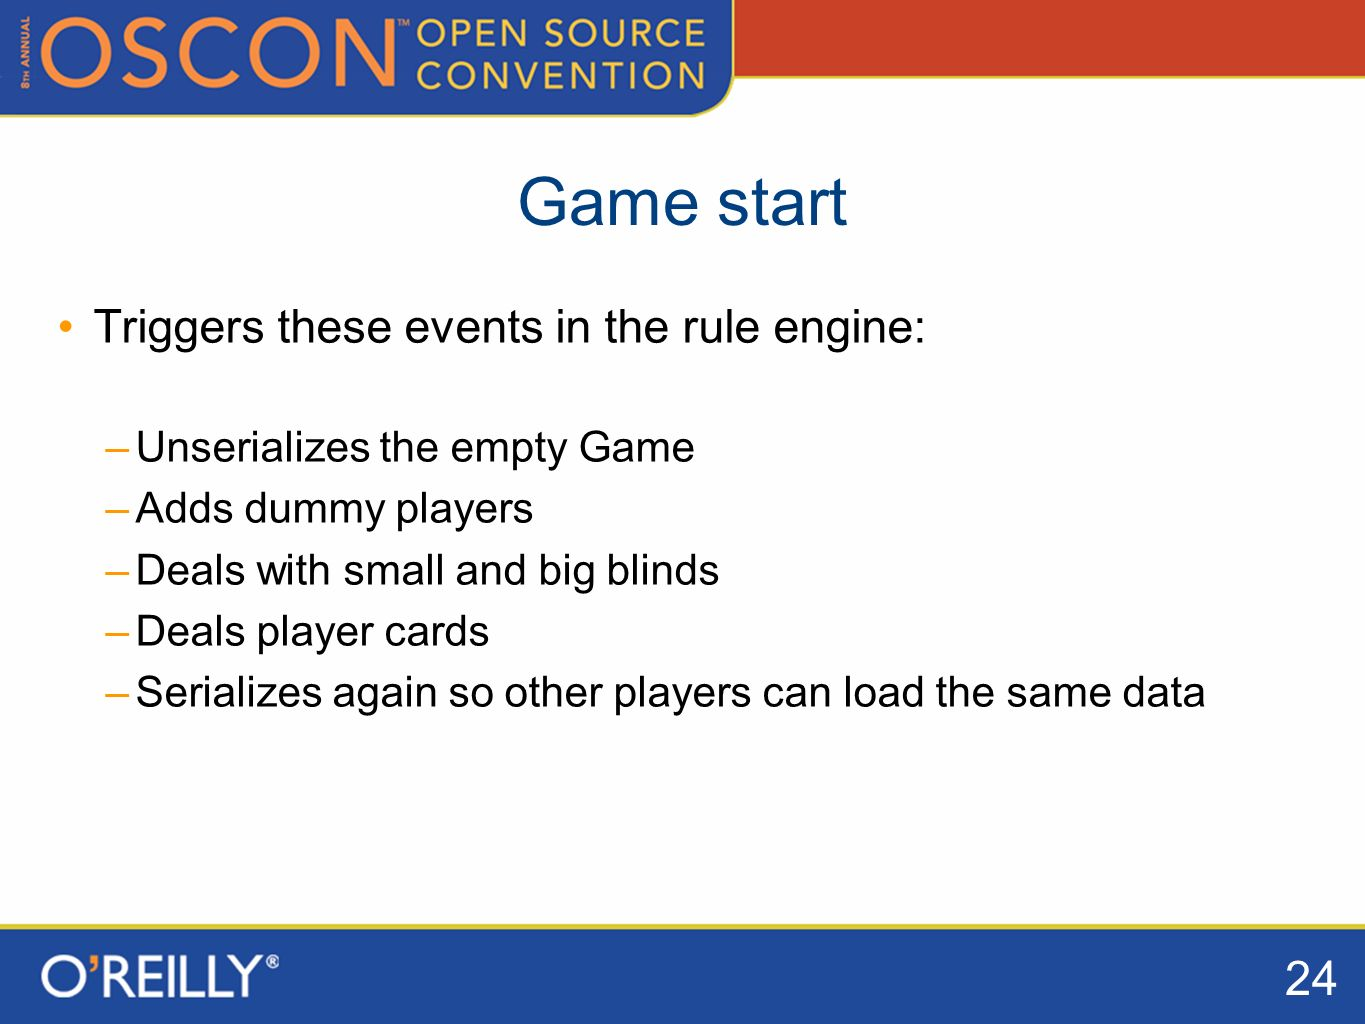 24 Game start Triggers these events in the rule engine: –Unserializes the empty Game –Adds dummy players –Deals with small and big blinds –Deals player cards –Serializes again so other players can load the same data